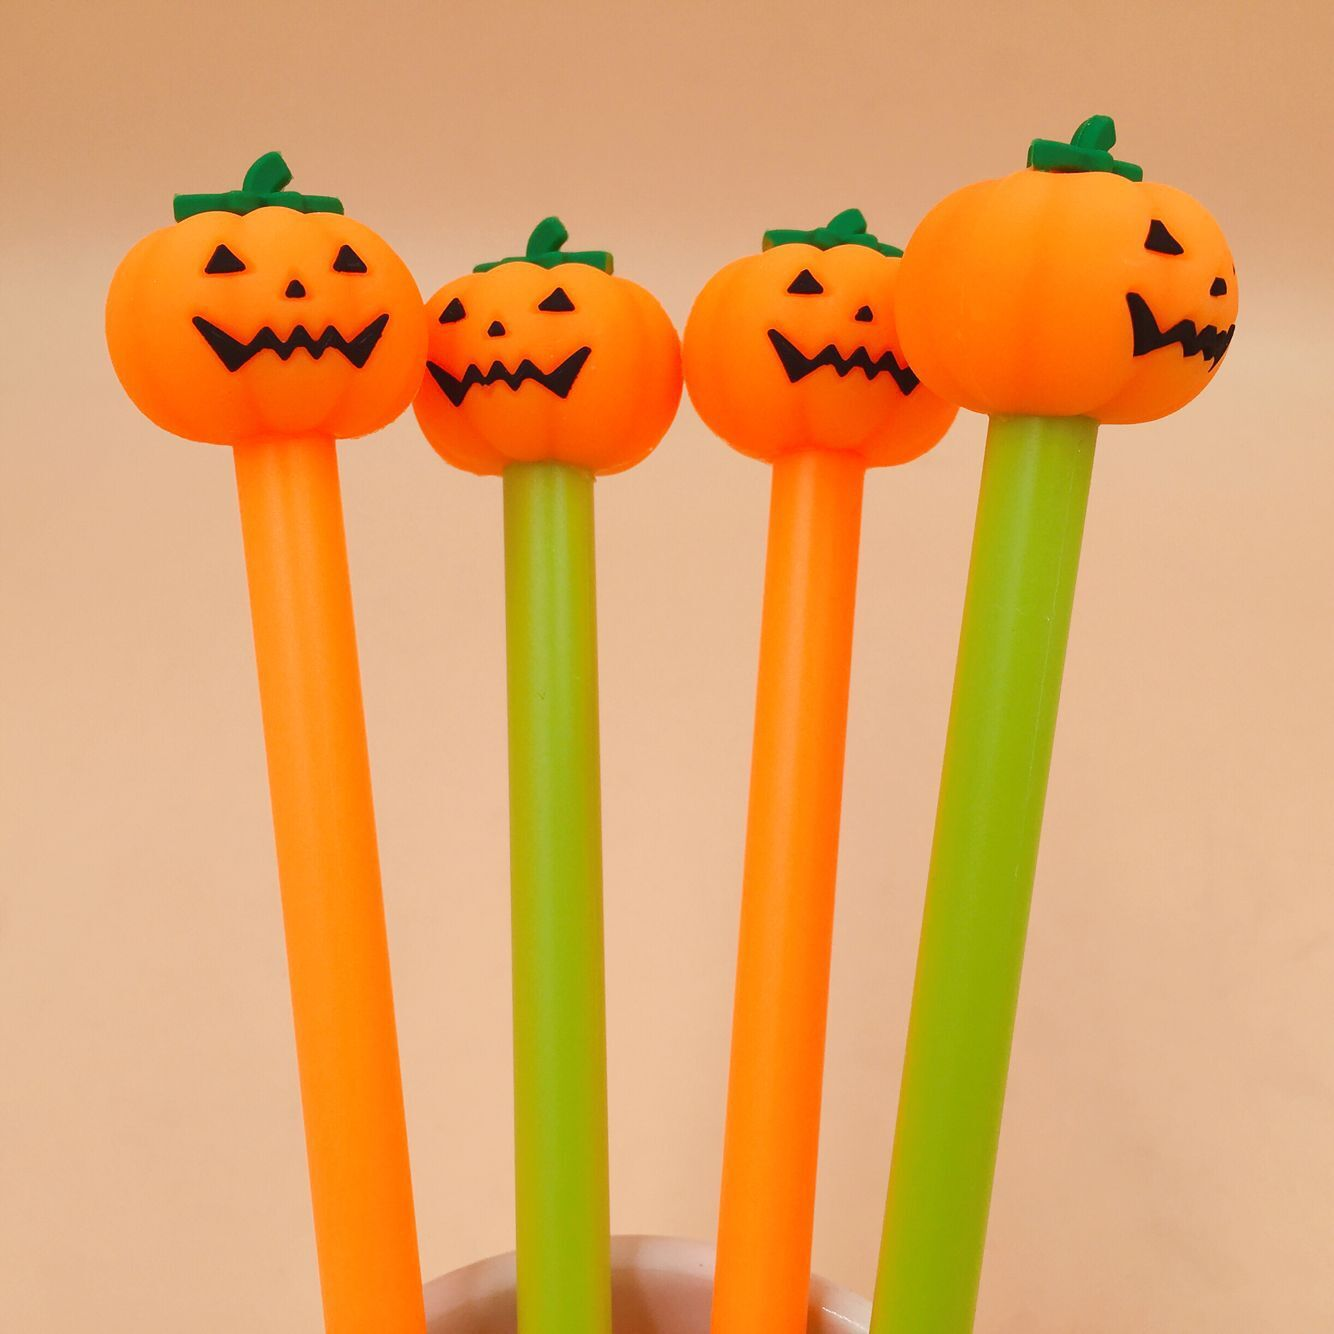 36 Pcs/lot Halloween Pumpkin Gel Pen Signature Pen Escolar Papelaria School Office Supply Promotional Gift36 Pcs/lot Halloween Pumpkin Gel Pen Signature Pen Escolar Papelaria School Office Supply Promotional Gift